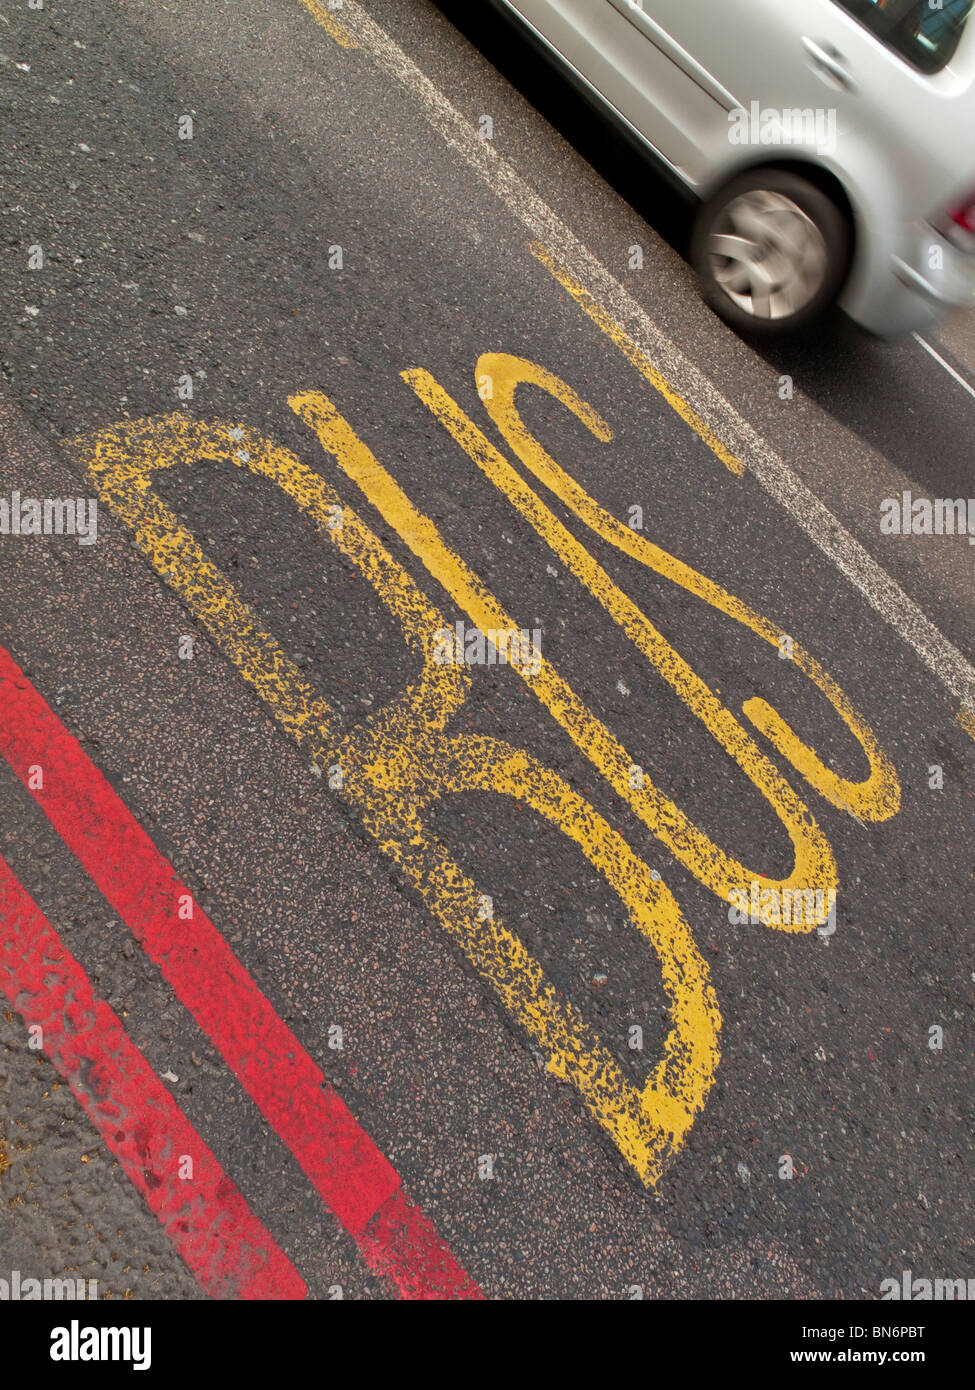 Bus lane and red route lines painted on a road in North London England UK designed to keep traffic moving - Stock Image